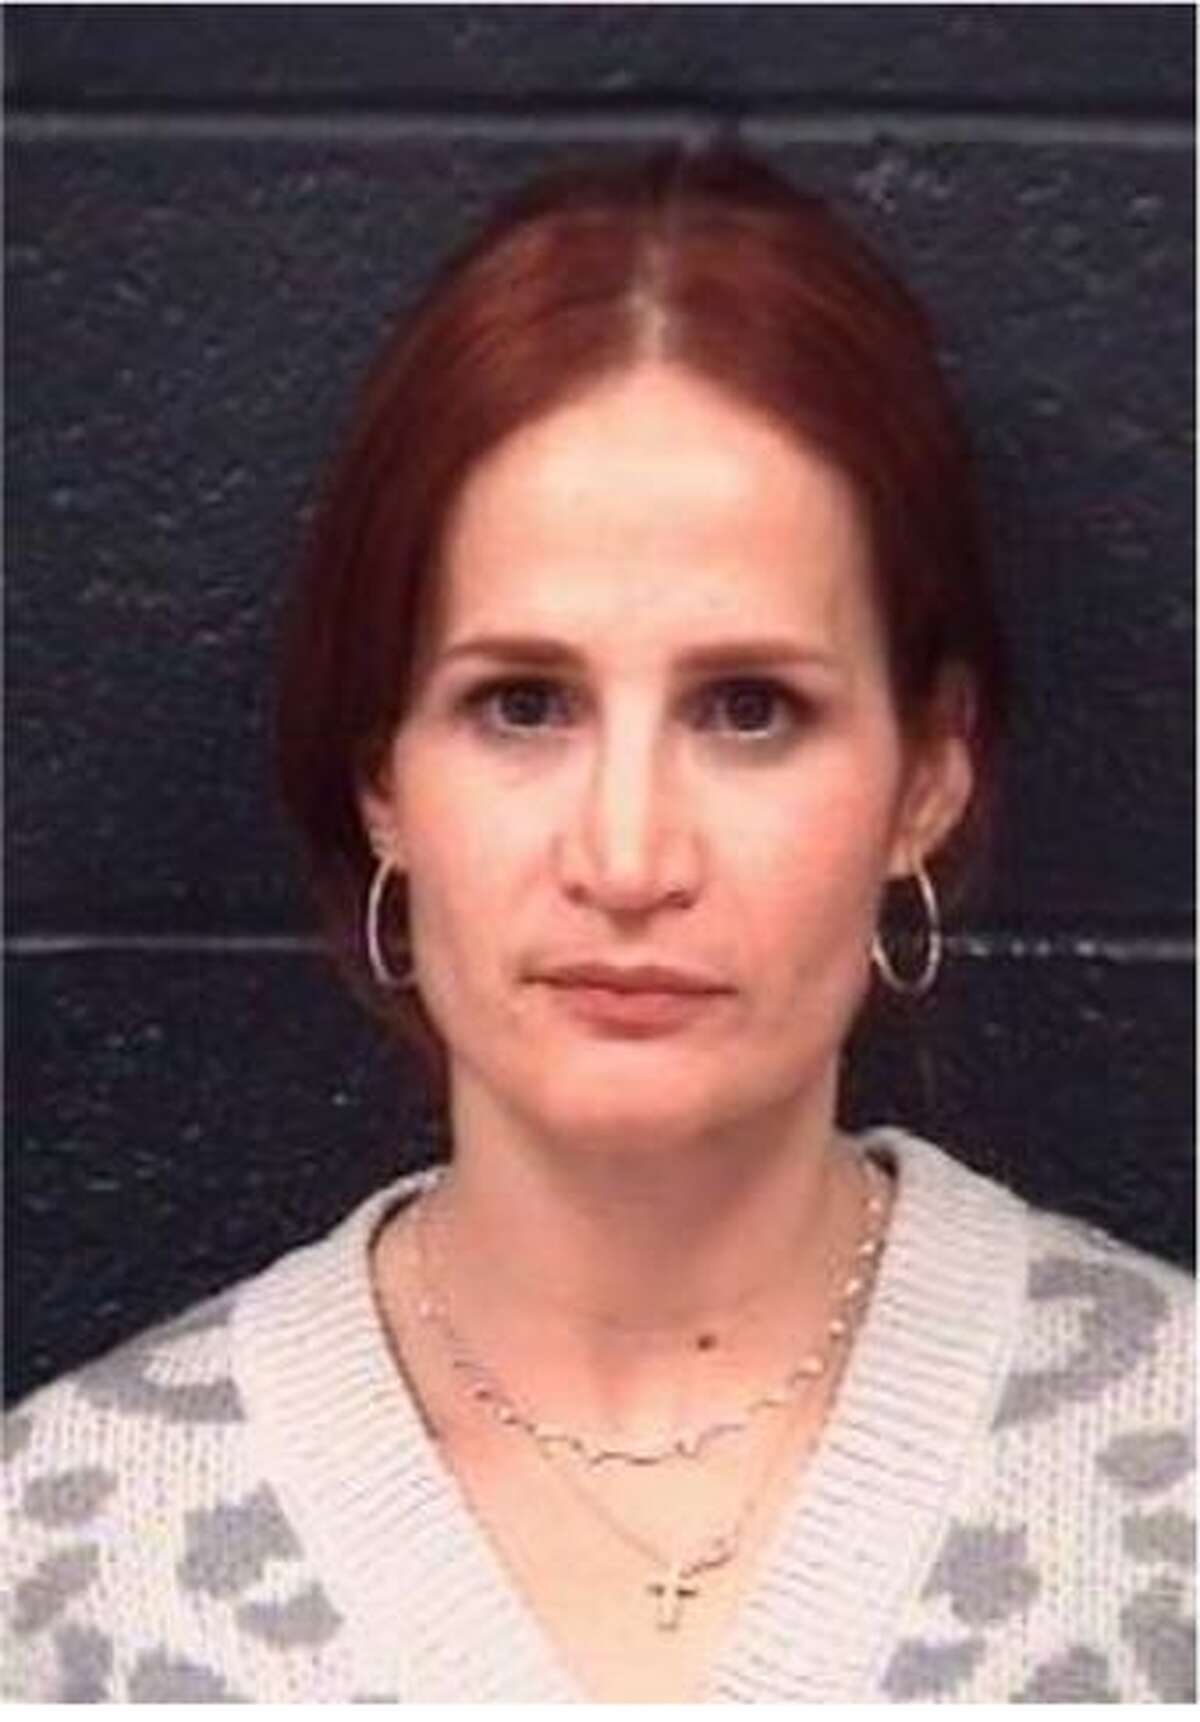 Martha Veronica Riddle was charged with driving while intoxicated.